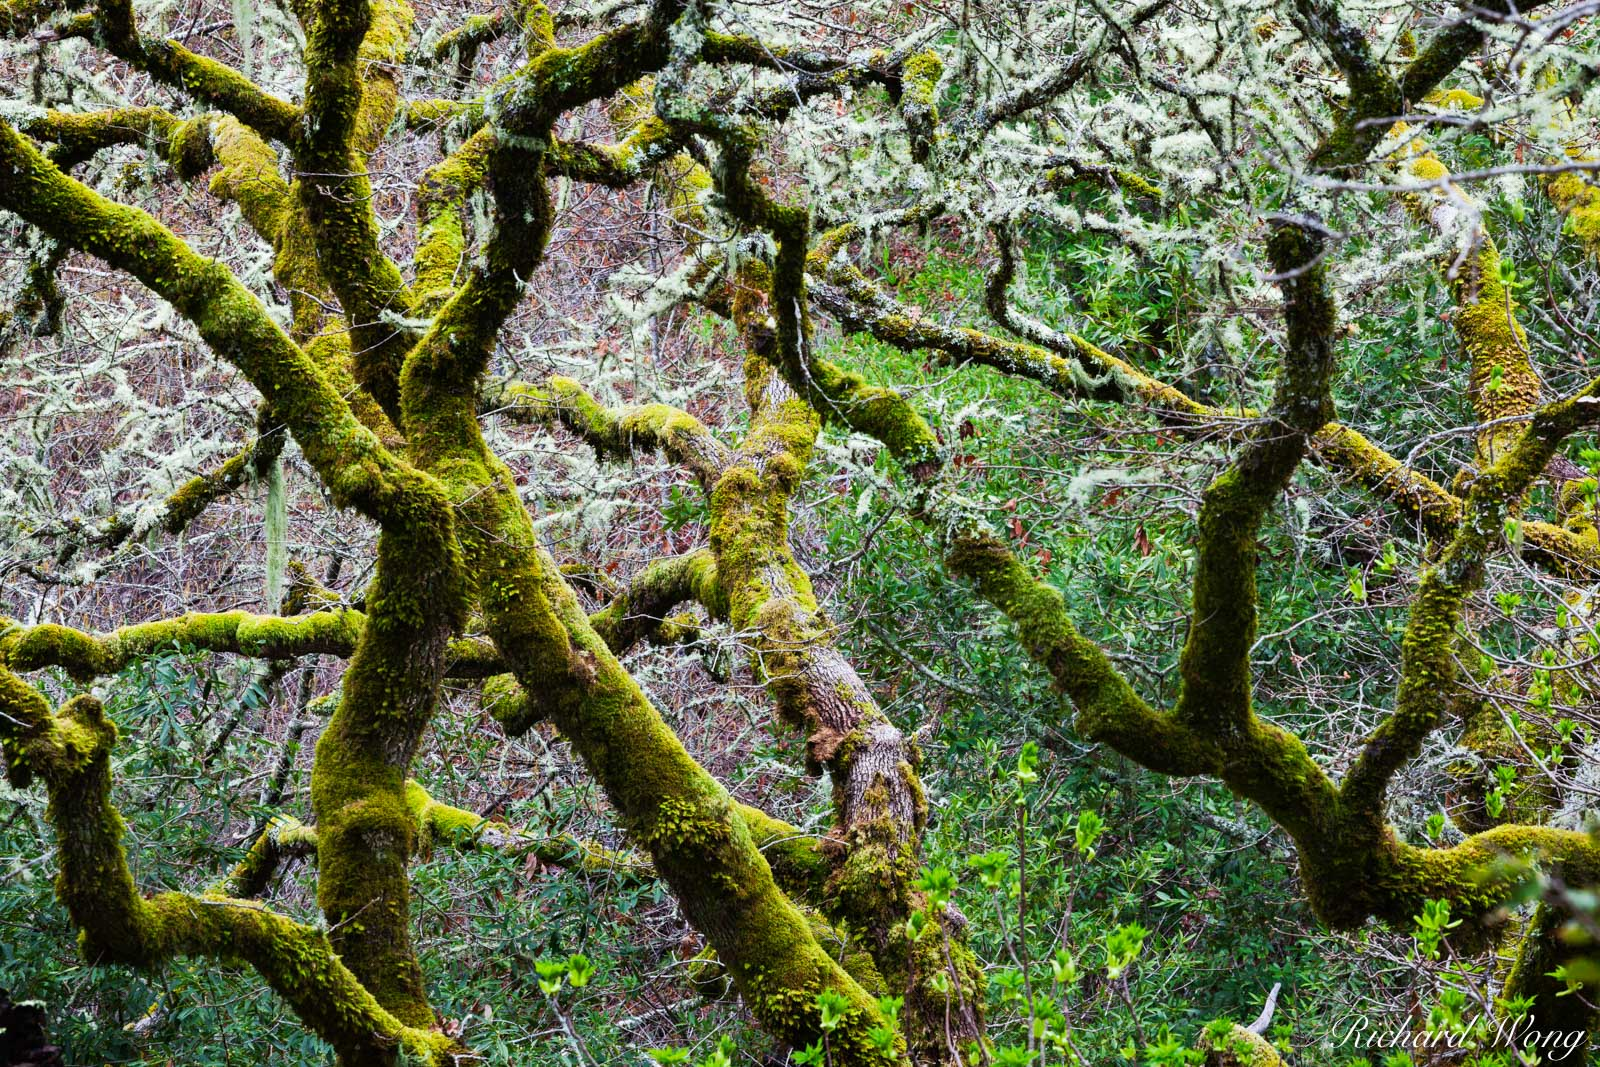 Mossy Trees and Lichen in Forest, Cascade Canyon Open Space Preserve, California, photo, photo